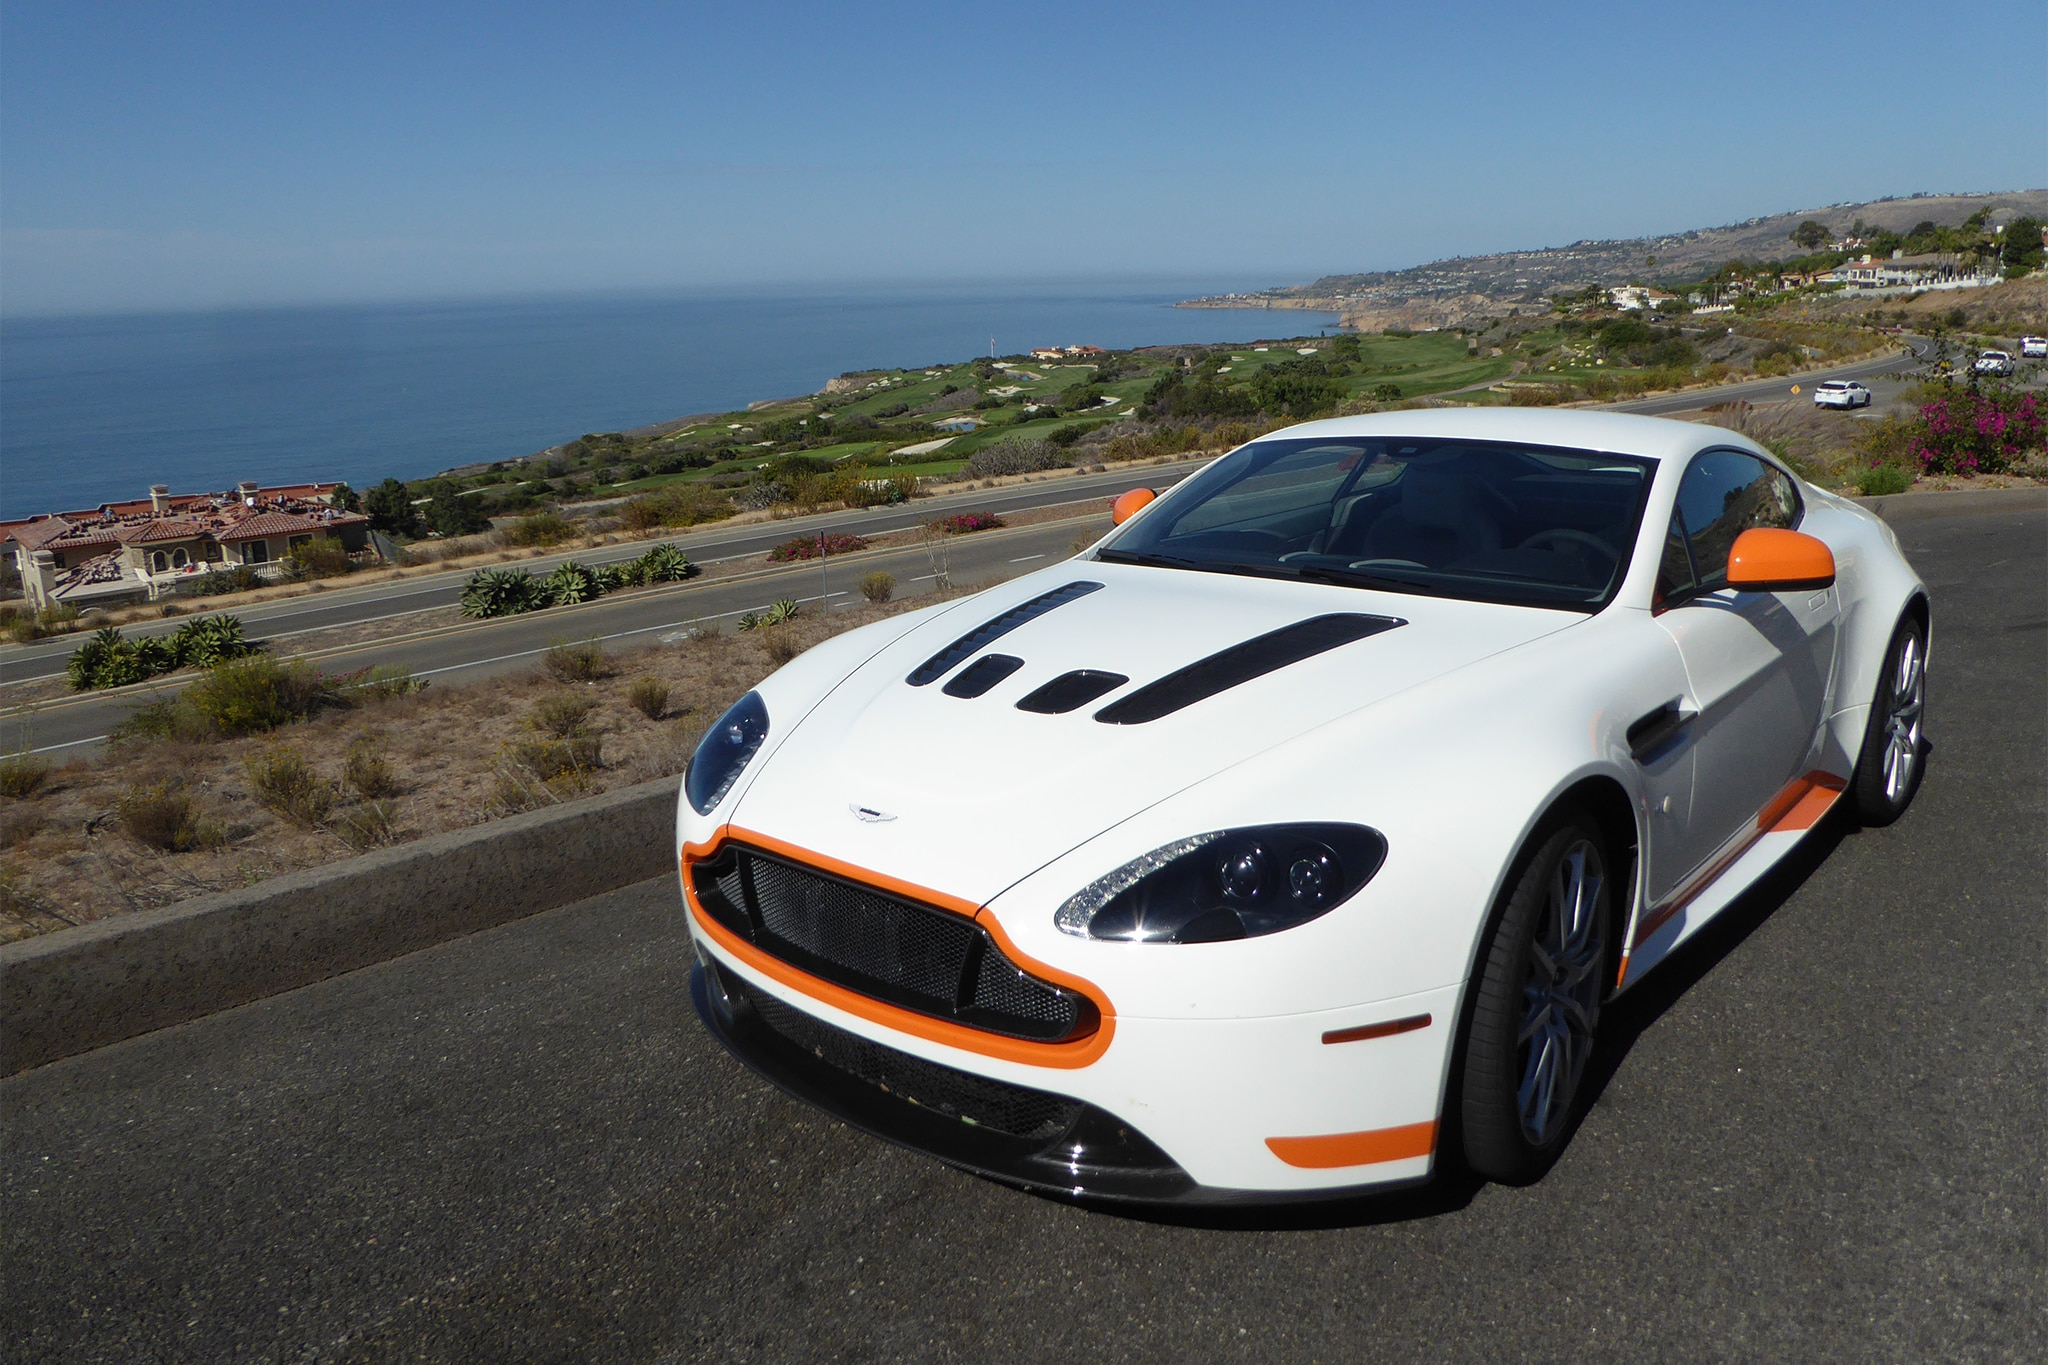 2016 aston martin v12 vantage s one week review automobile magazine. Black Bedroom Furniture Sets. Home Design Ideas